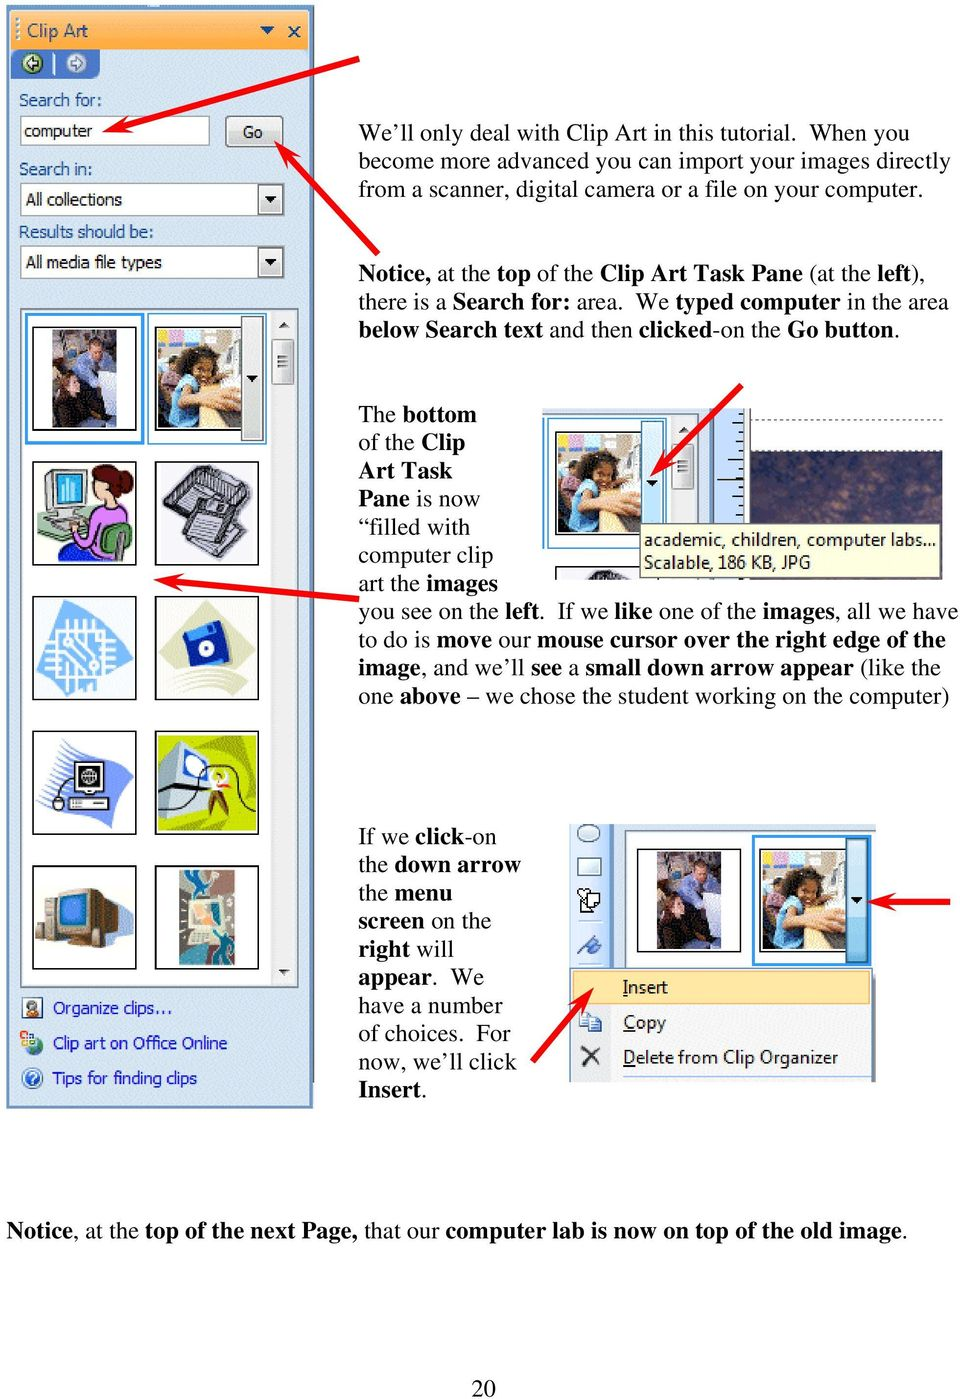 The bottom of the Clip Art Task Pane is now filled with computer clip art the images you see on the left.